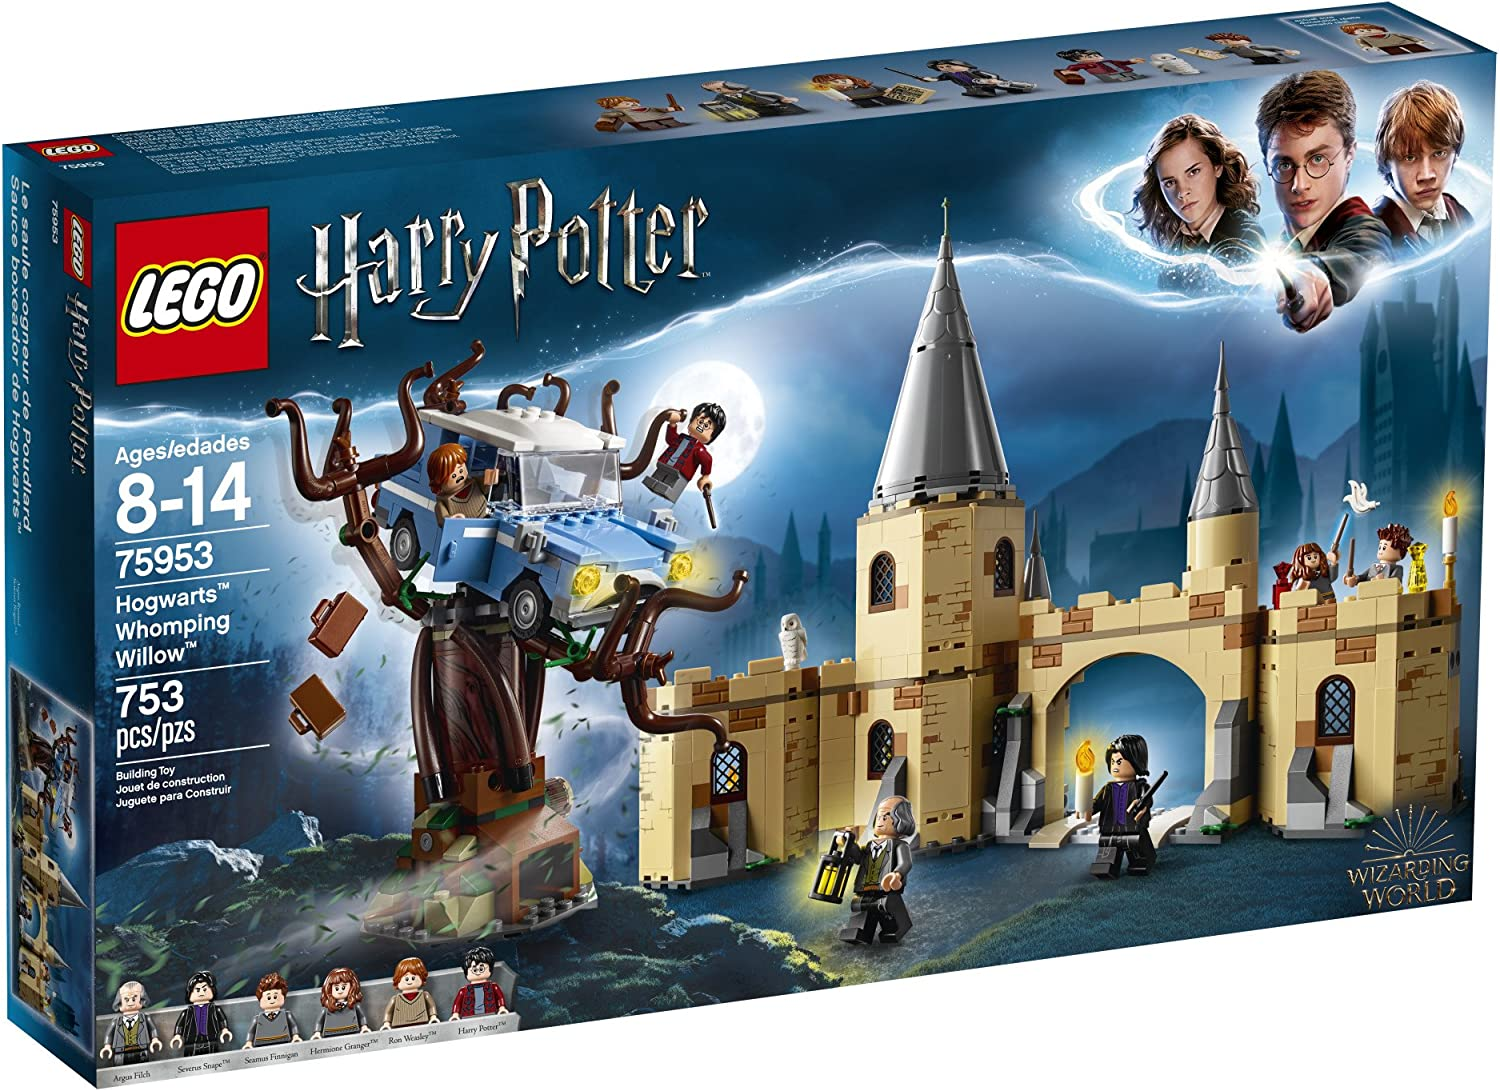 Lego Harry Potter And The Chamber Of Secrets Hogwarts Whomping Willow 75953 Magic Toys Building Kit Prisoner Of Azkaban Hedwig Hermoine Granger And Severus Snape 753 Pieces Toys Games Amazon Canada